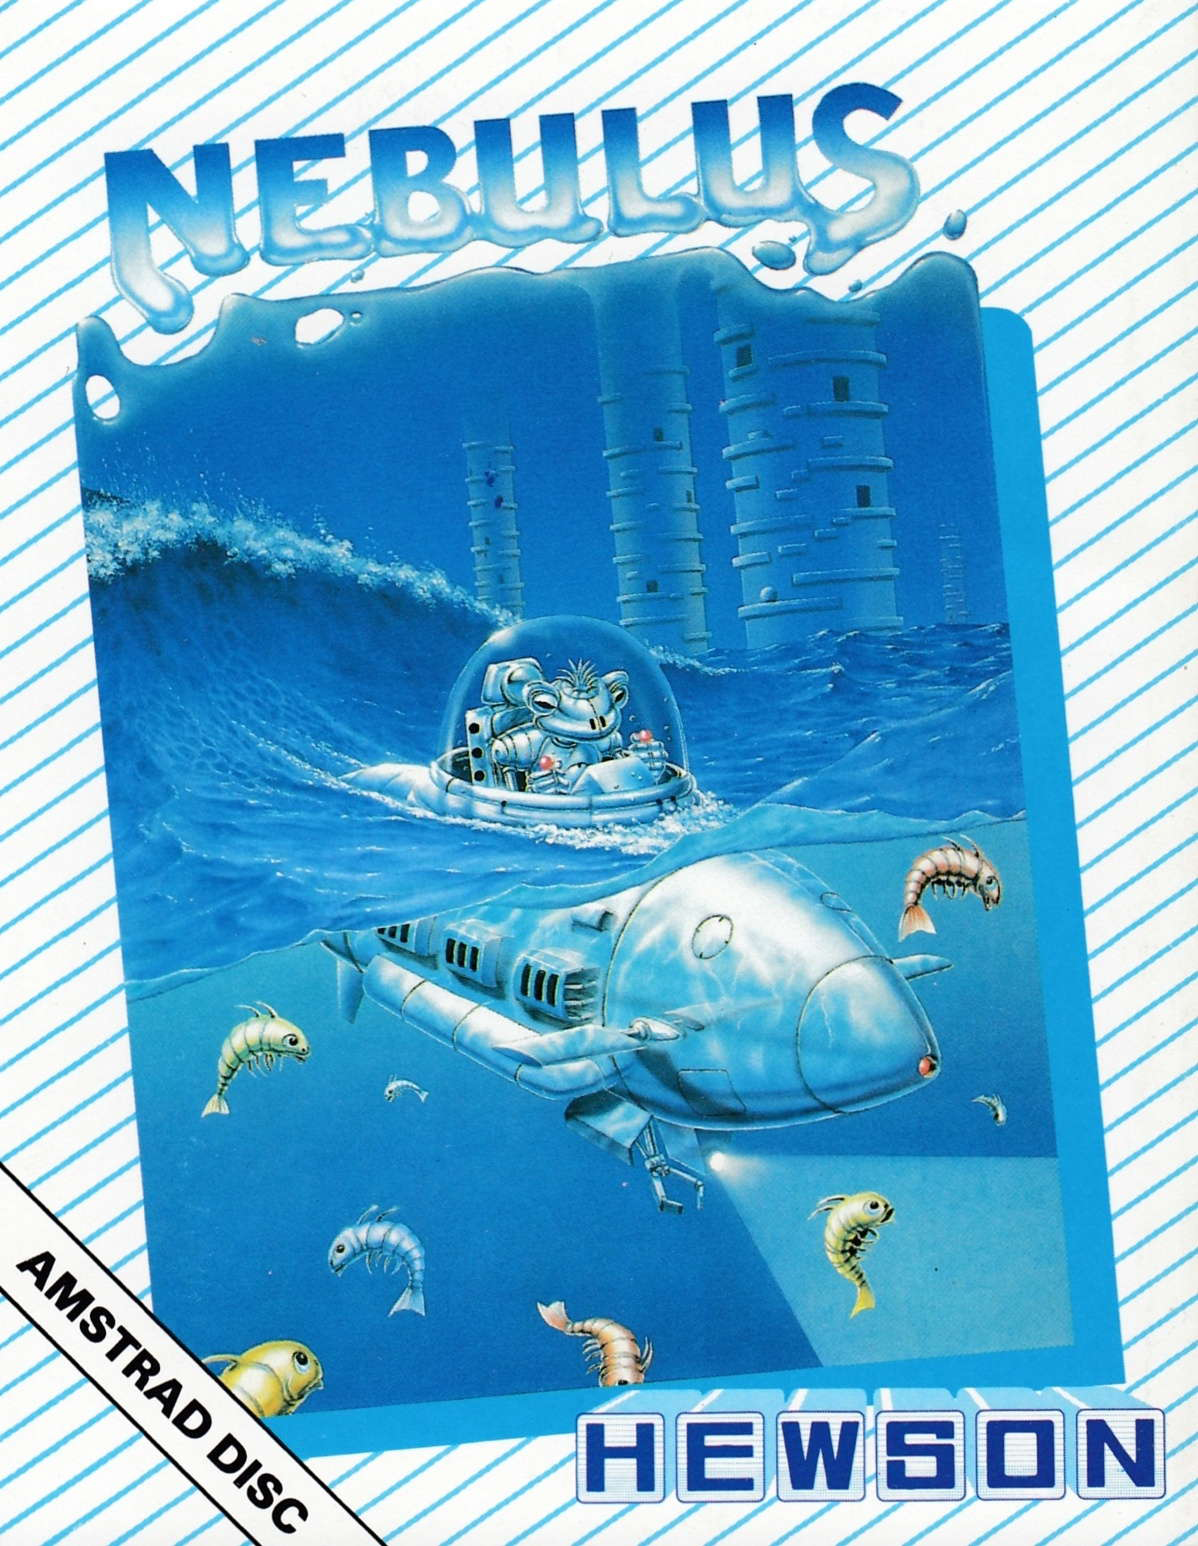 cover of the Amstrad CPC game Nebulus  by GameBase CPC